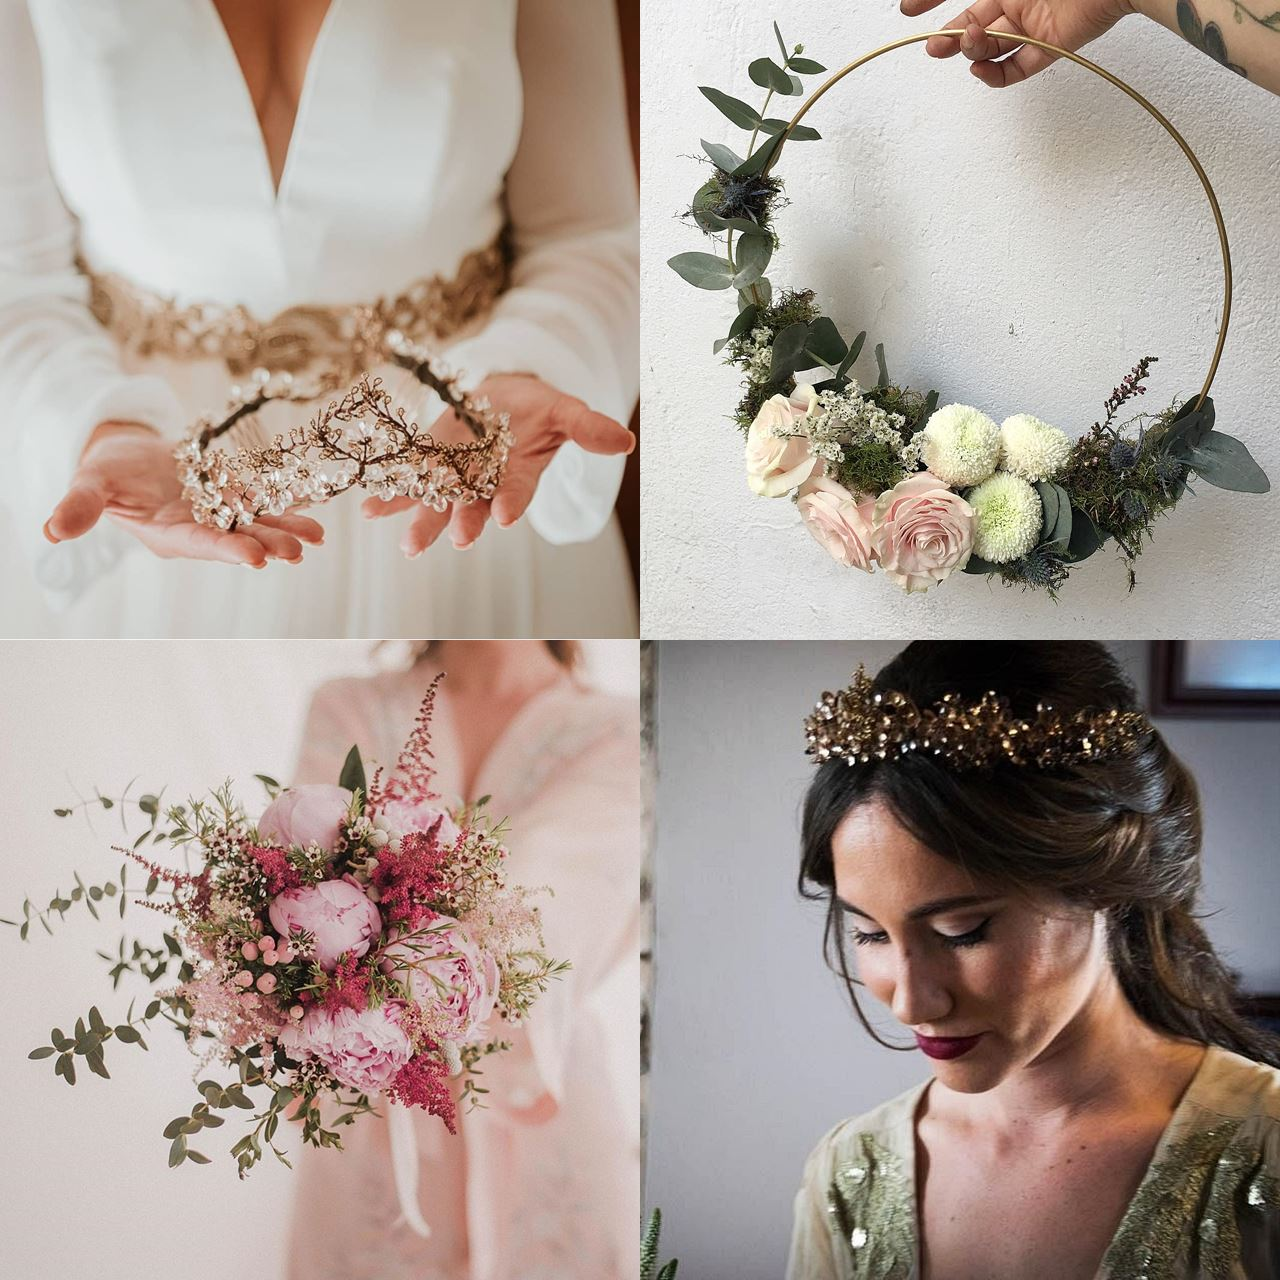 Wedding headdresses and bouquets